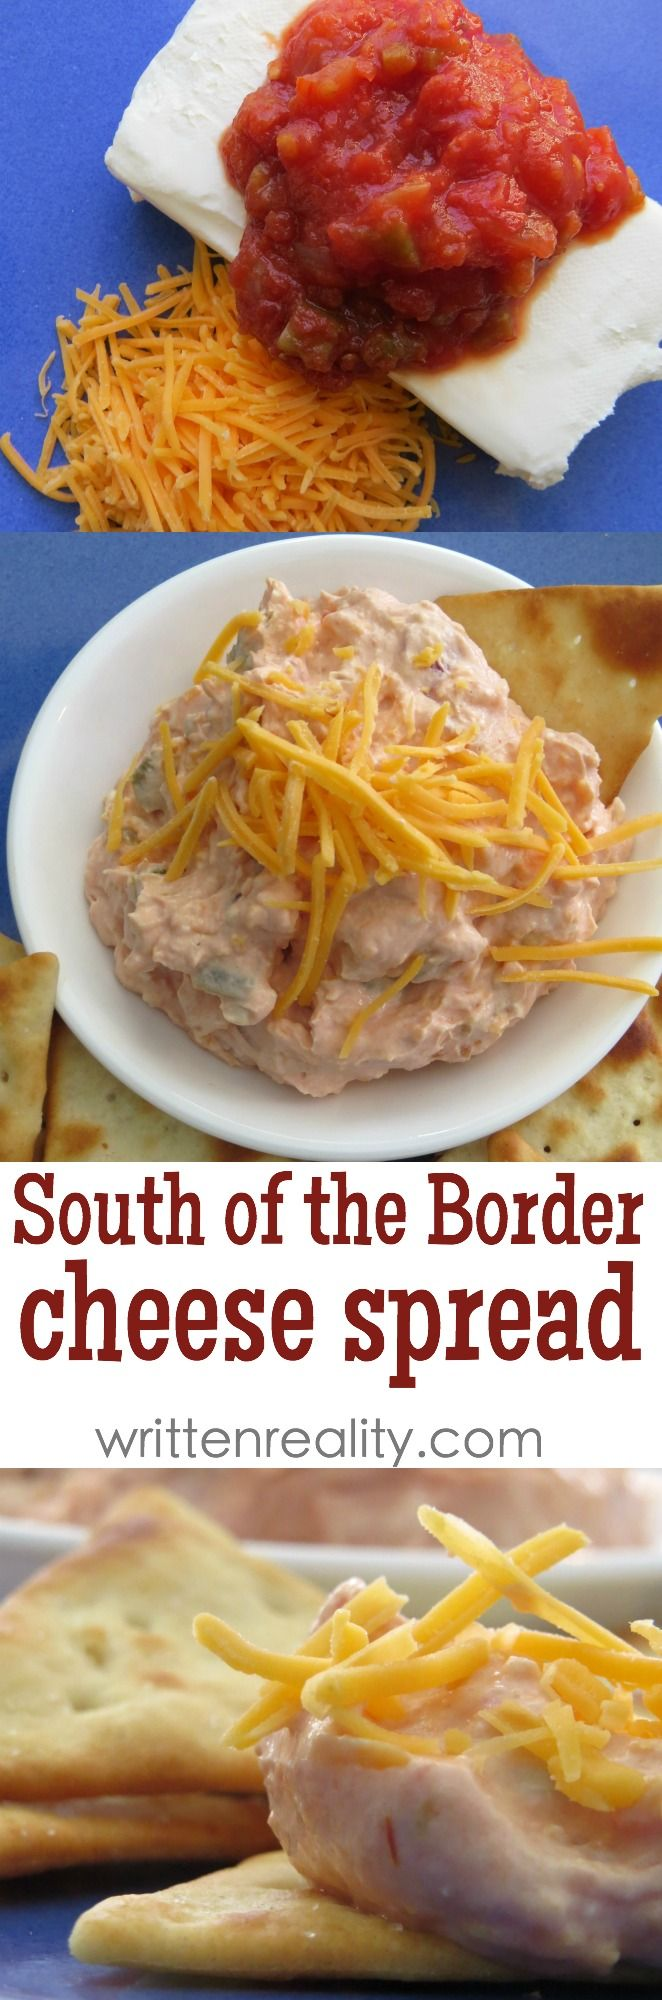 South of the Border Cheese Spread